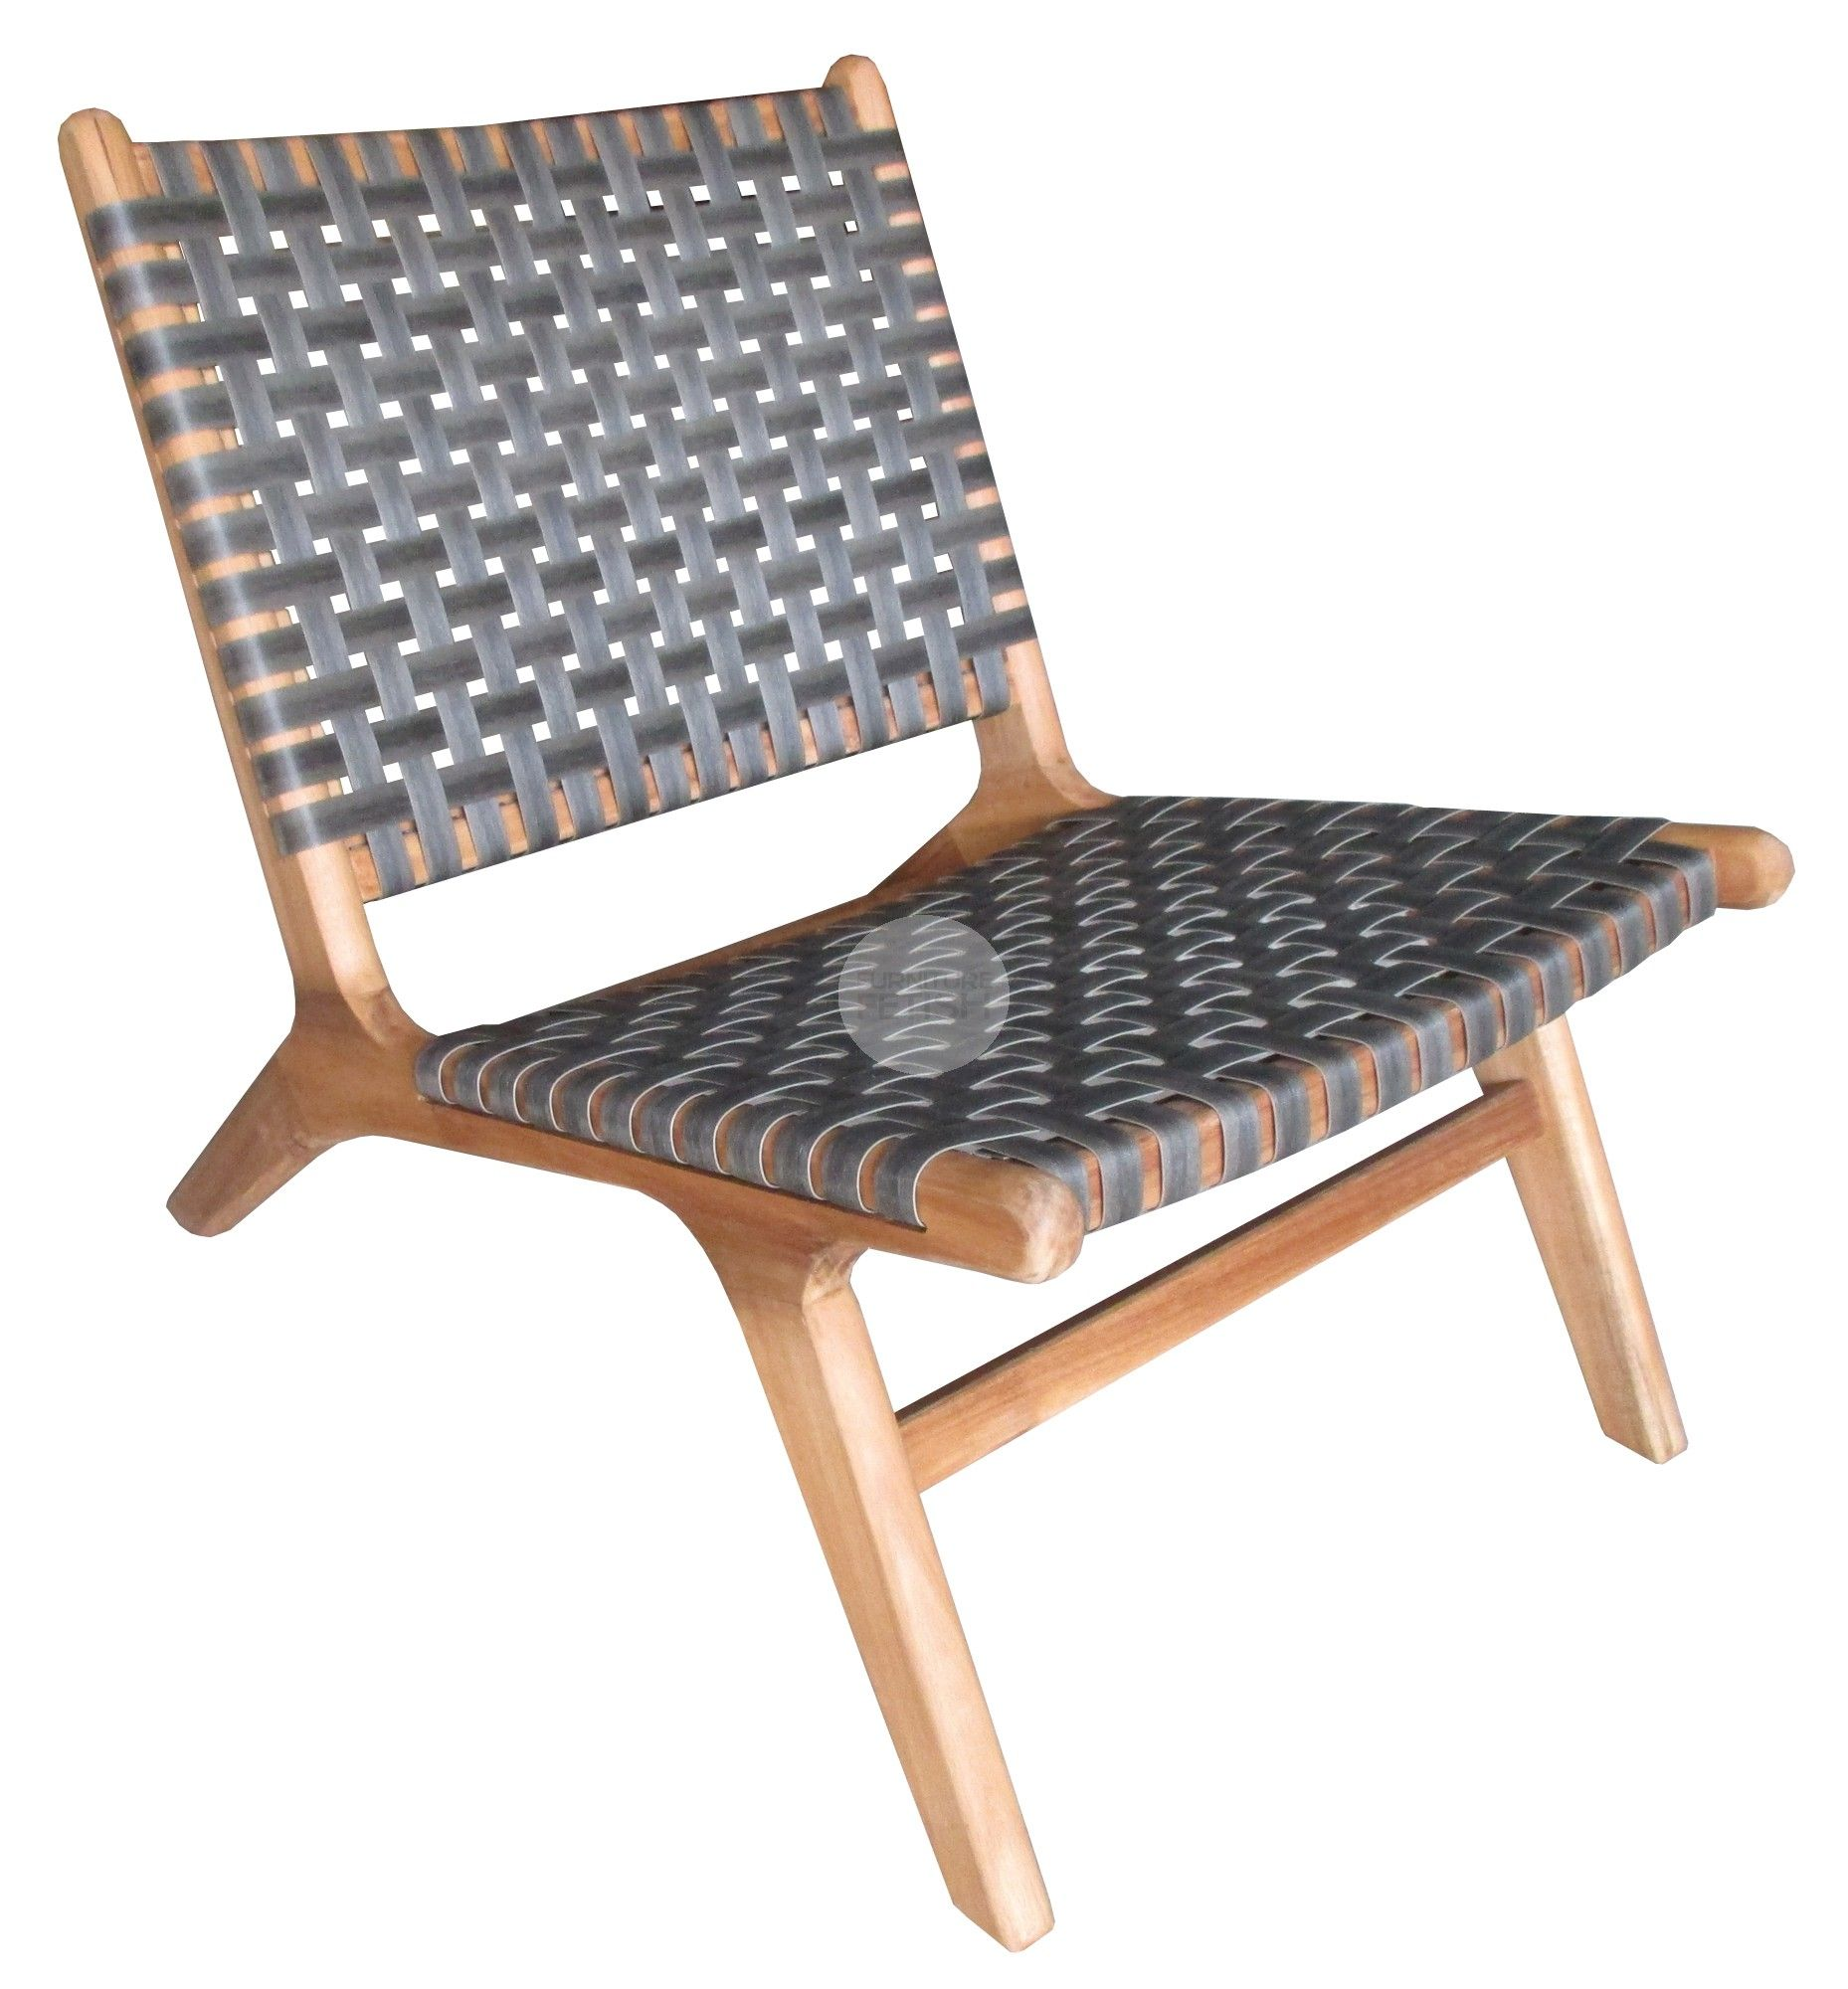 Delicieux Replica Jens Risom Chair Angle